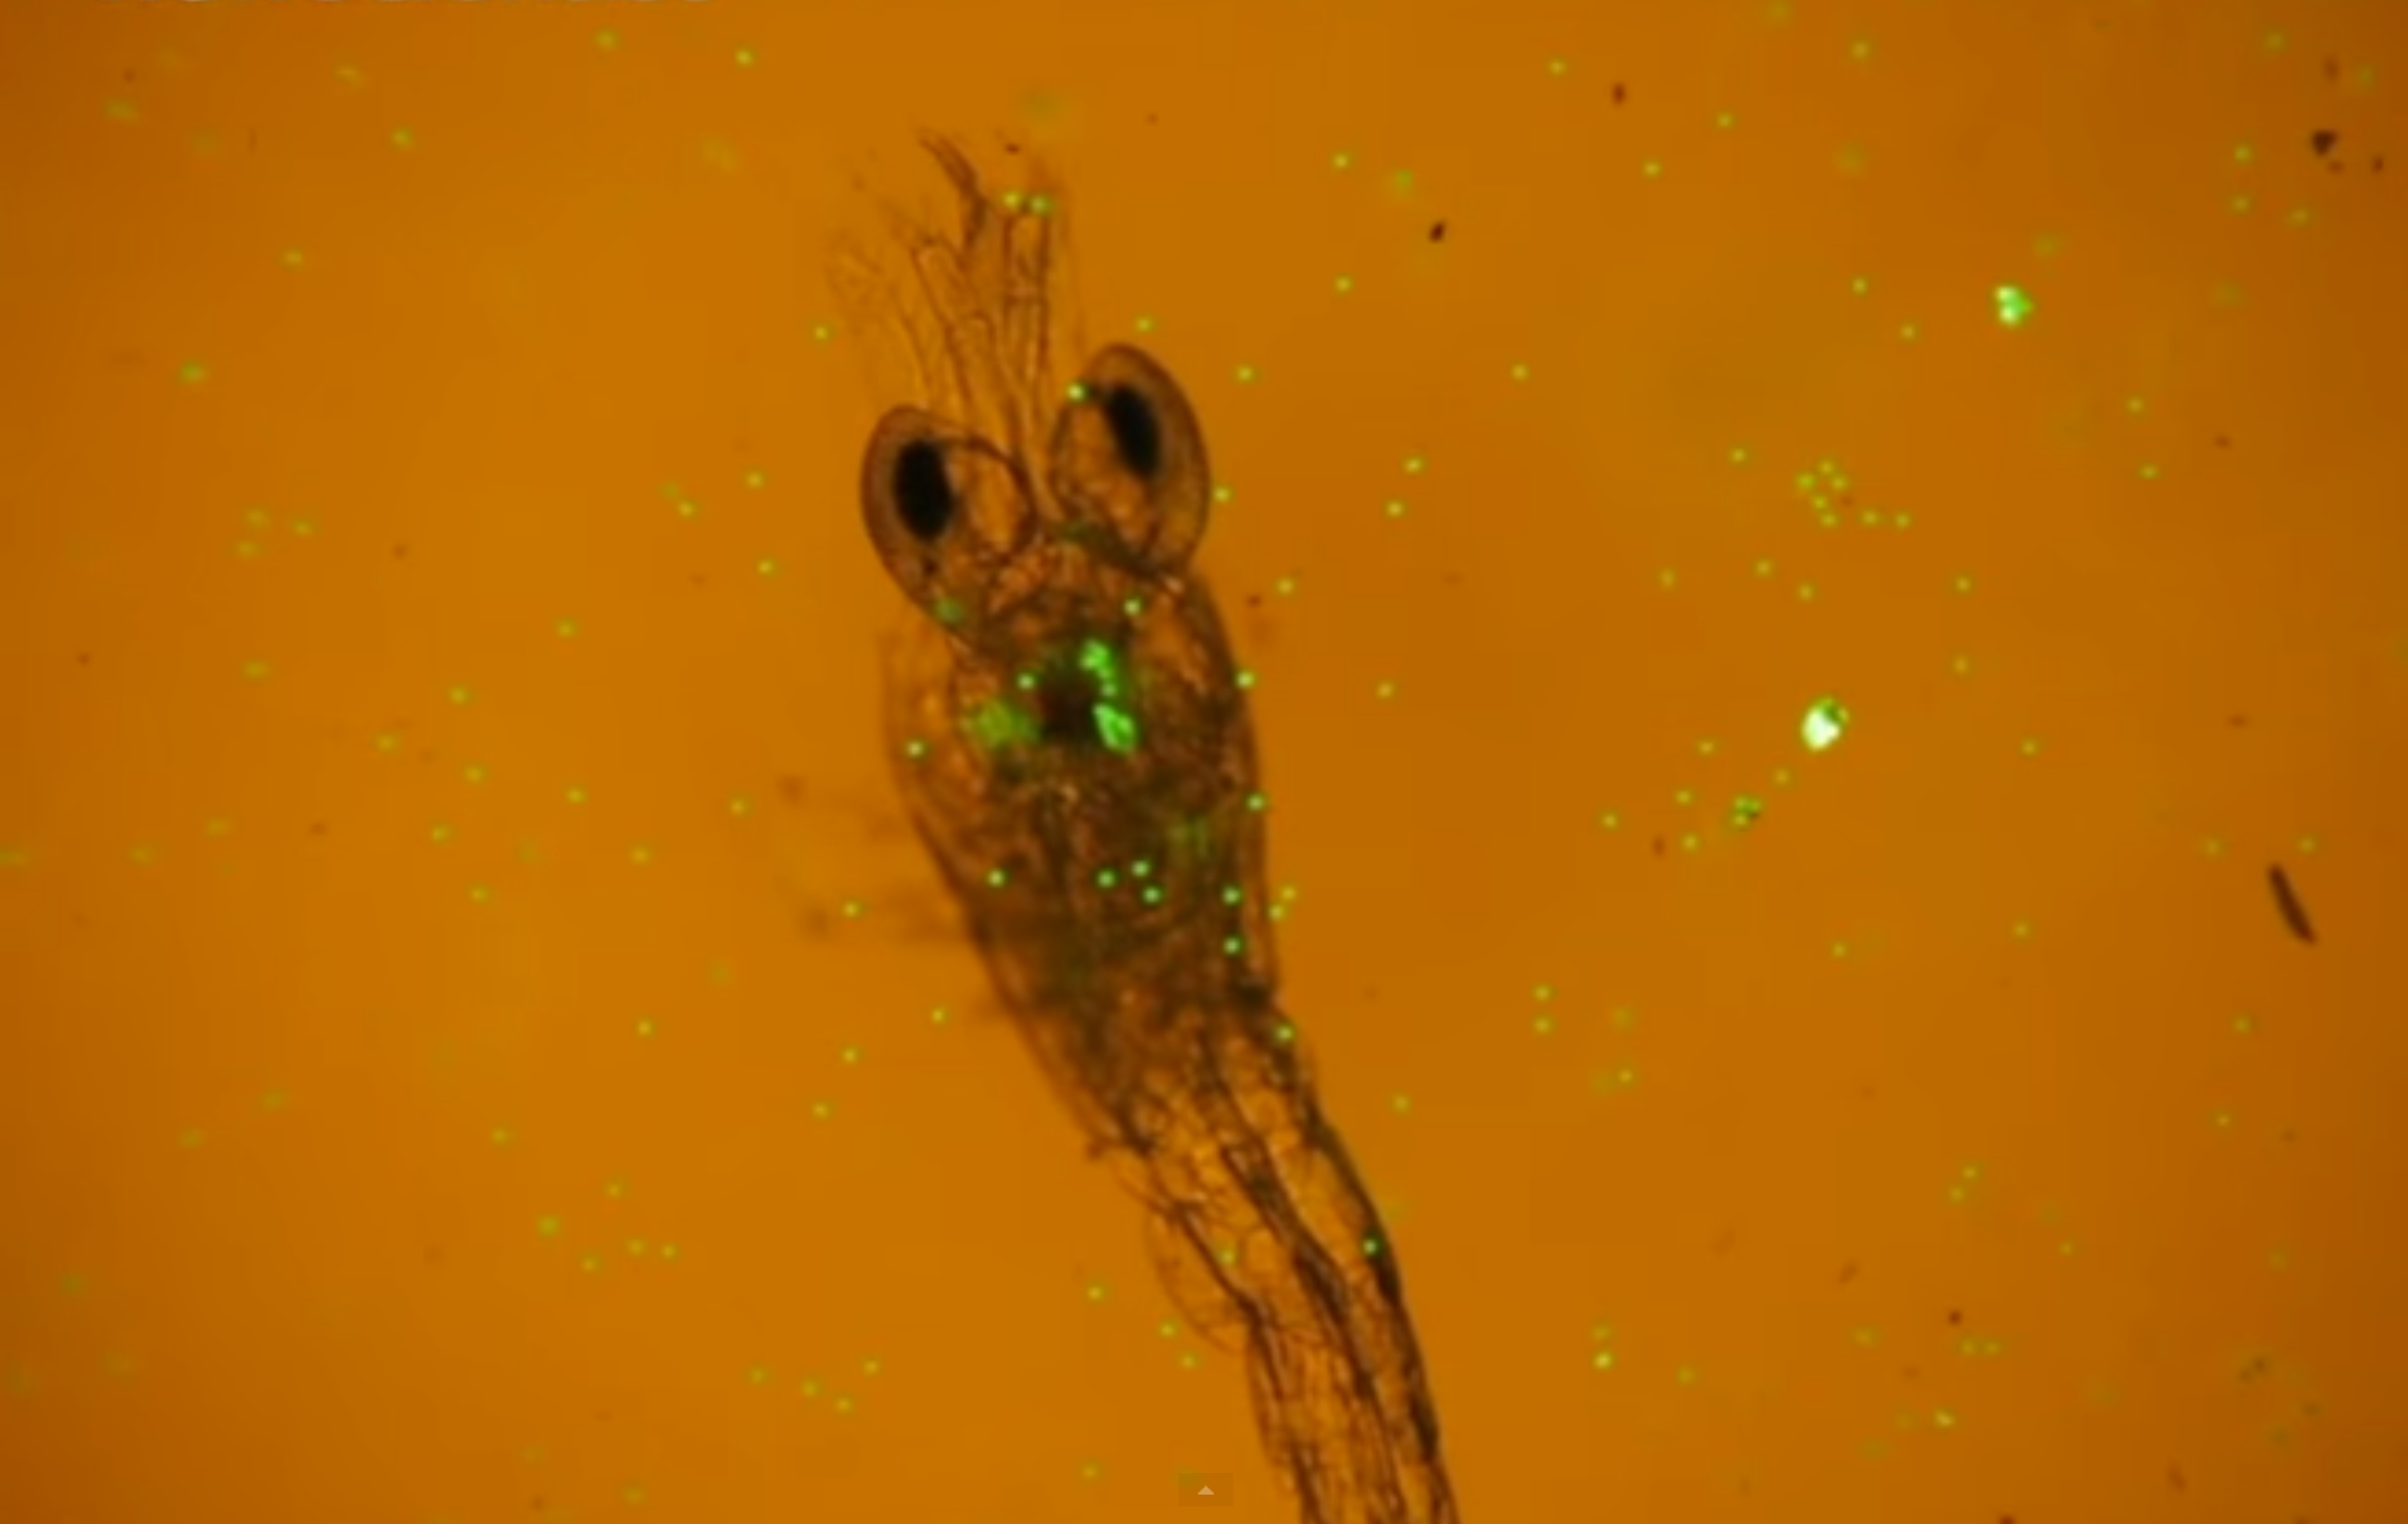 Zooplankton Filmed Feasting on Fluorescent Plastic Microbeads for First Time